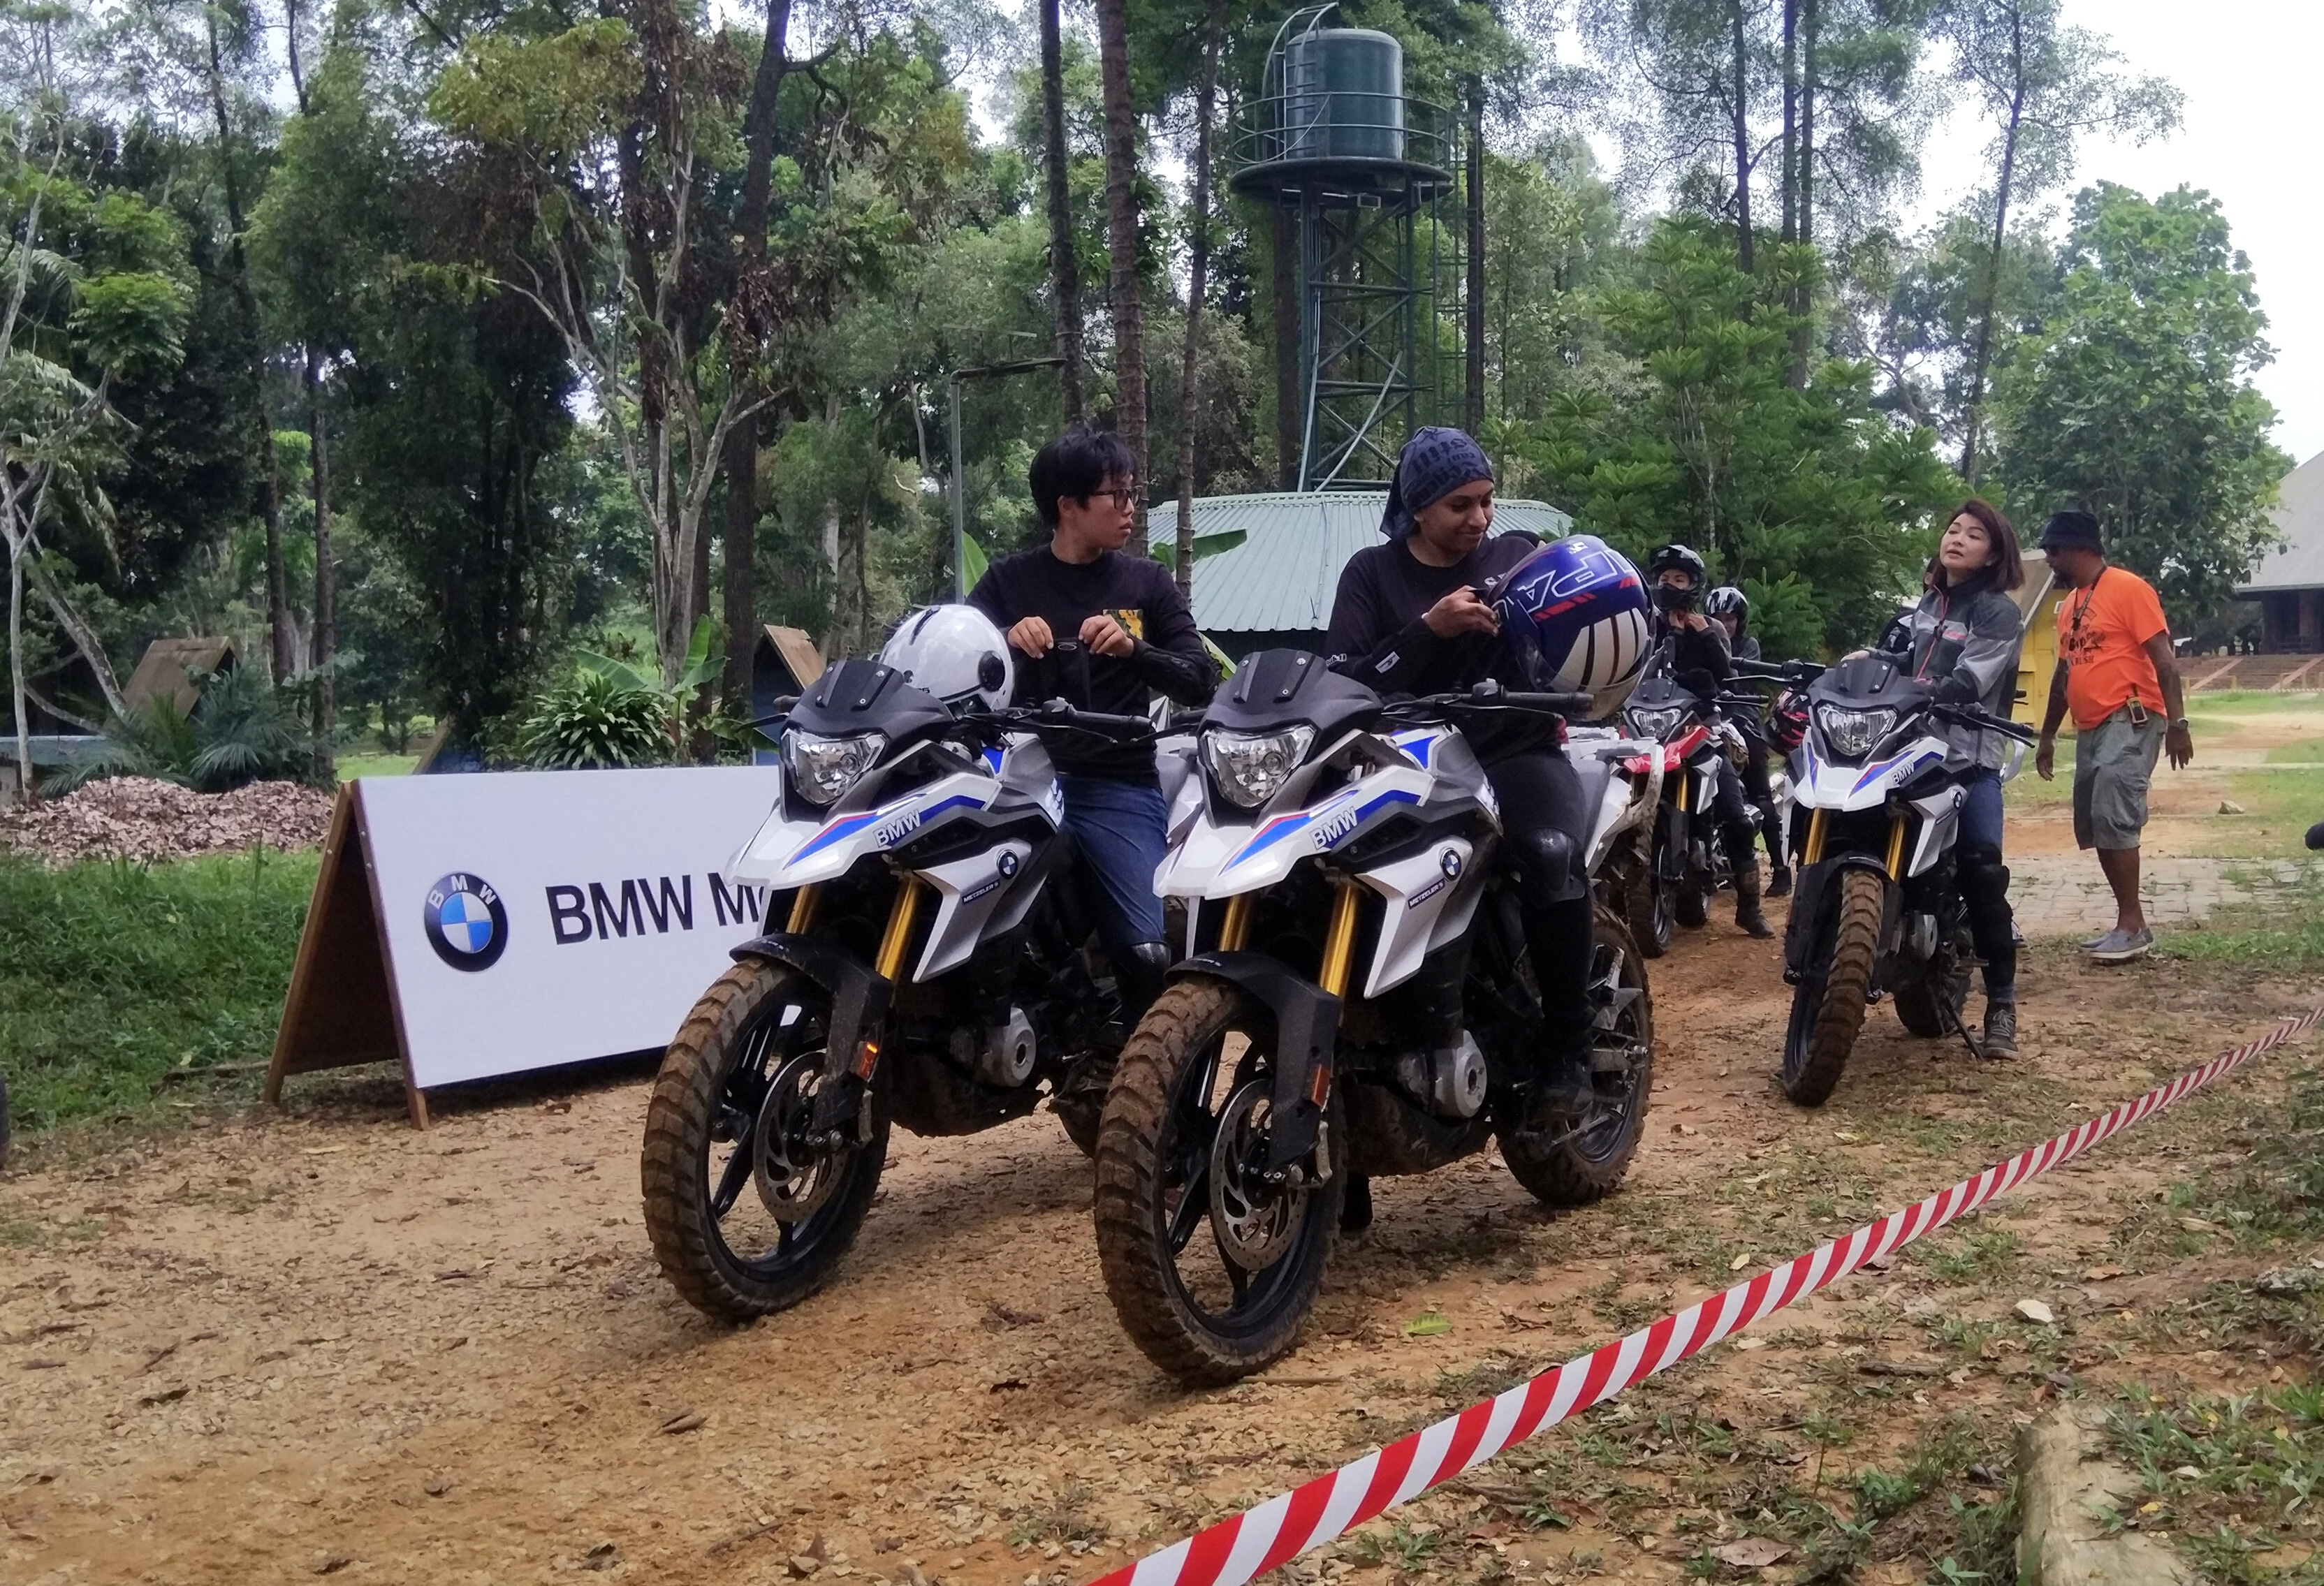 Riders preparing to move off on their BMW G310GS